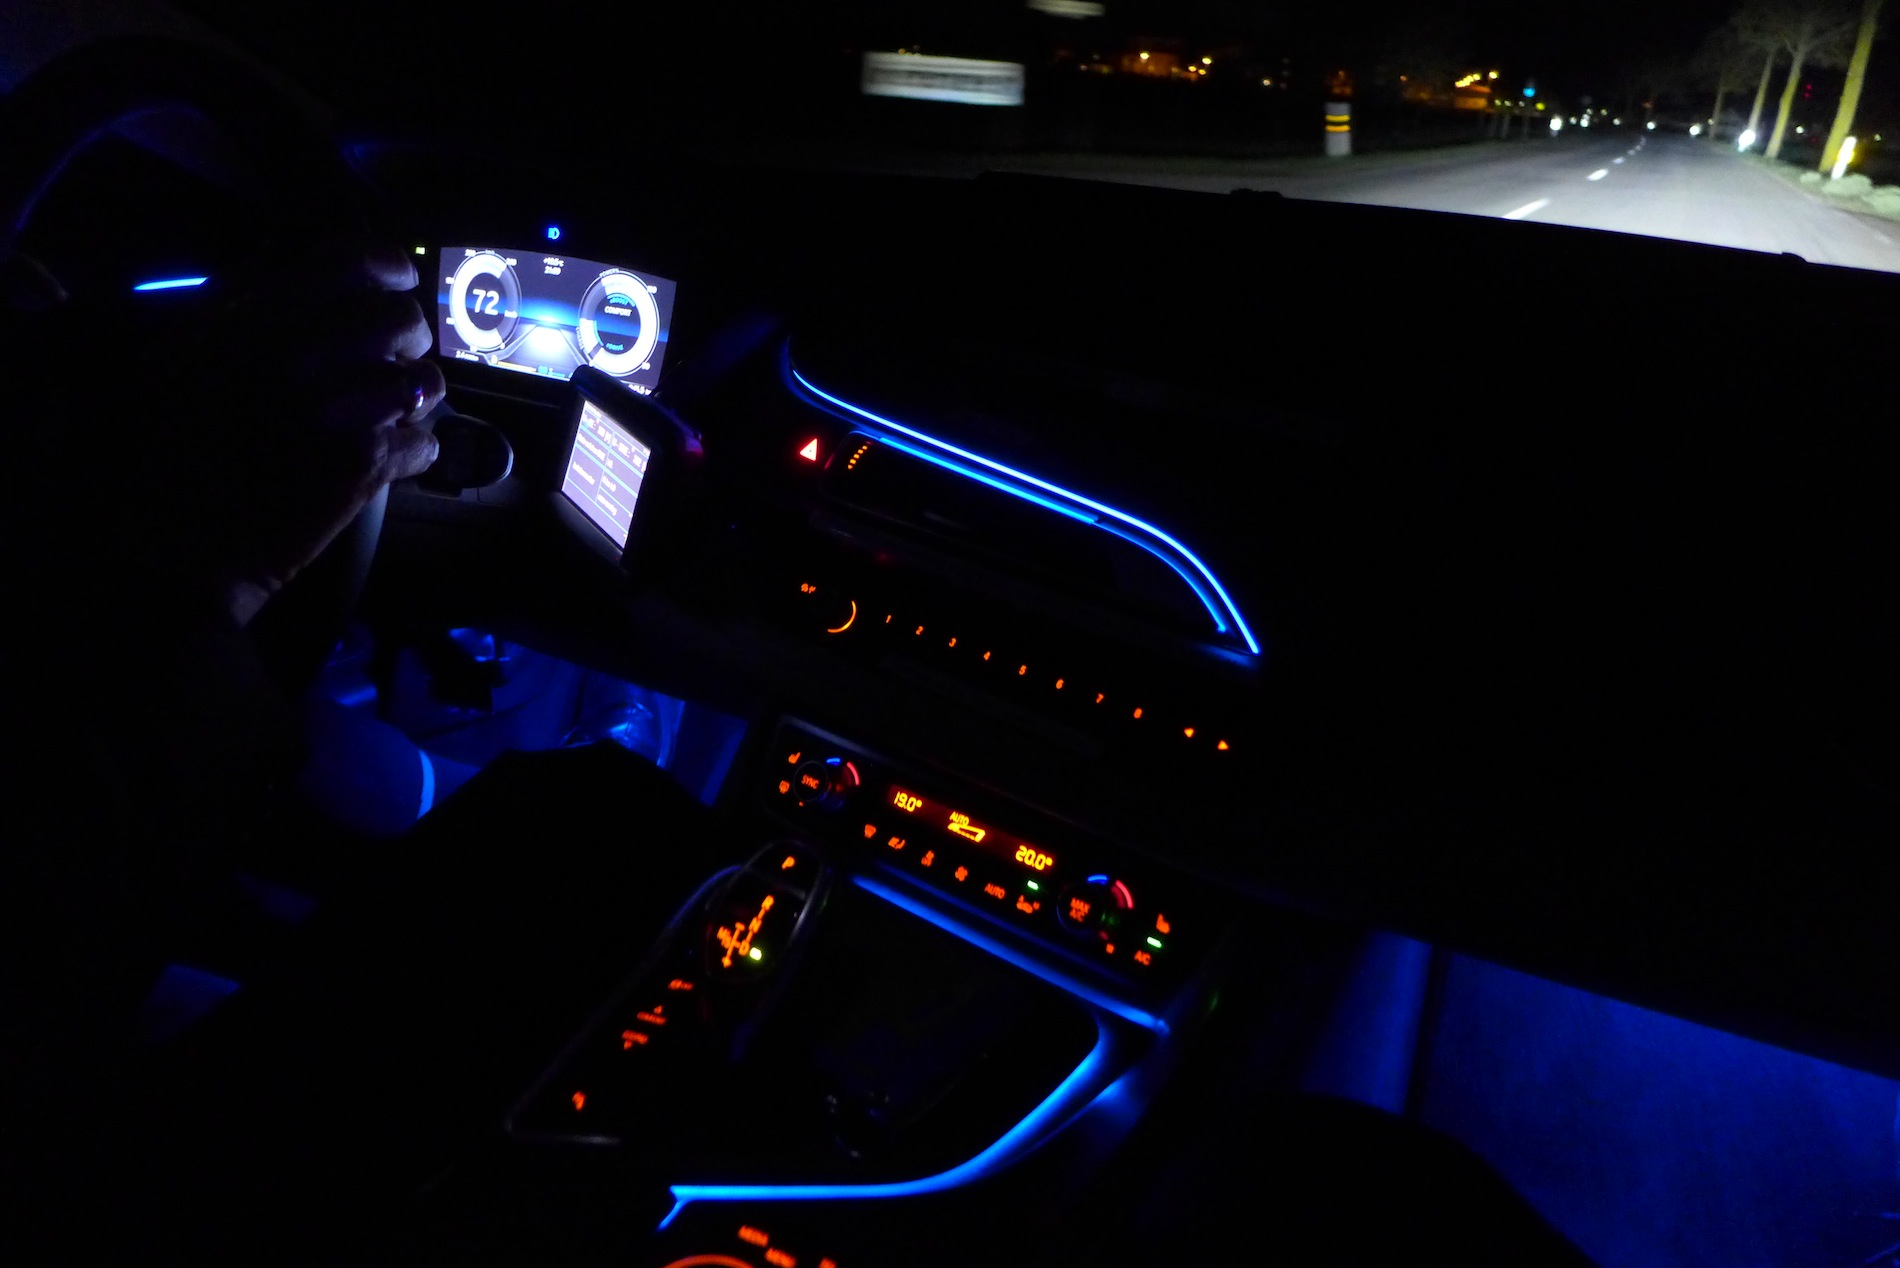 2015 Bmw M4 Interior Night